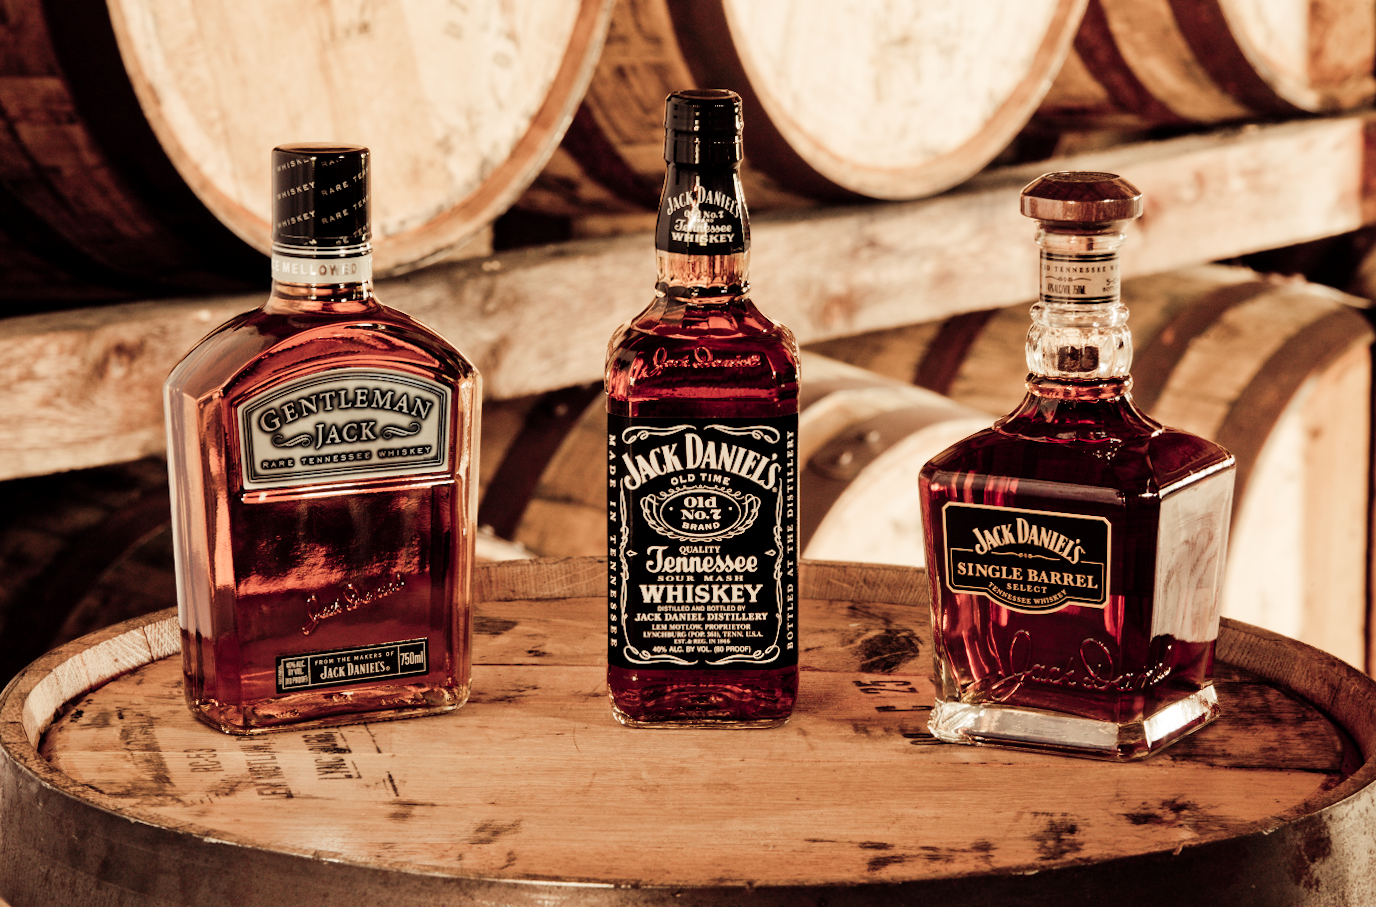 jack daniels business history It took brilliant marketing to turn jack daniel's into the lore and legend— jack daniel's ads have focused on the history of business insider.